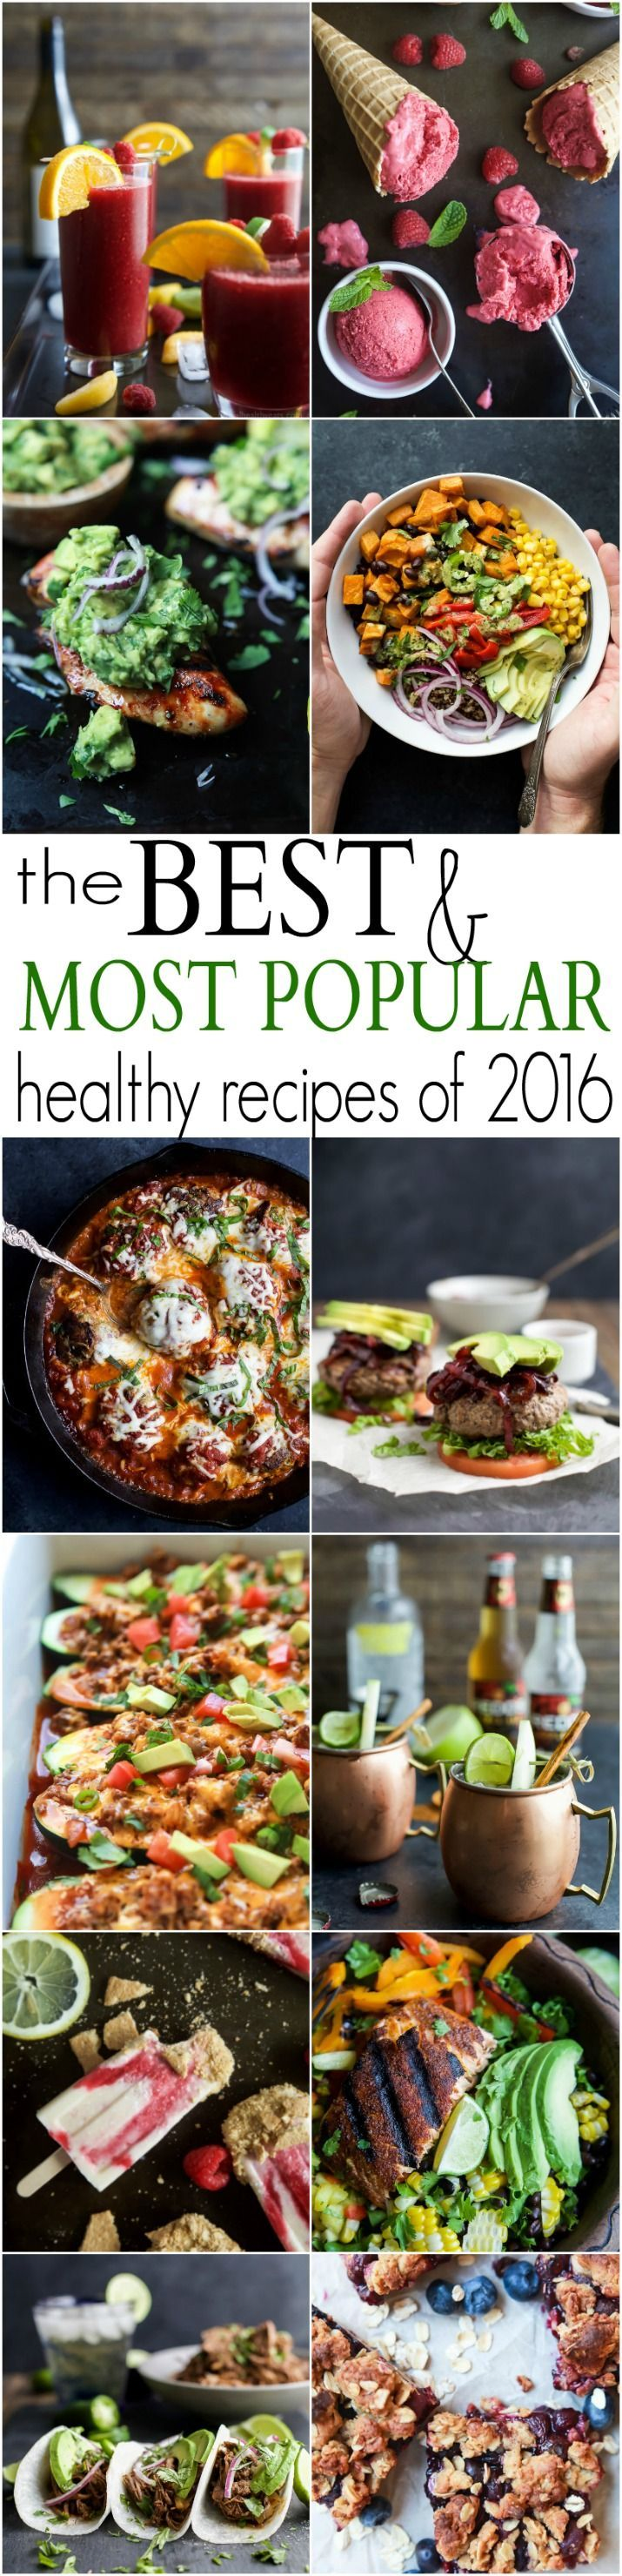 2294 best 21 DAYS FIX images on Pinterest | Healthy meals ...